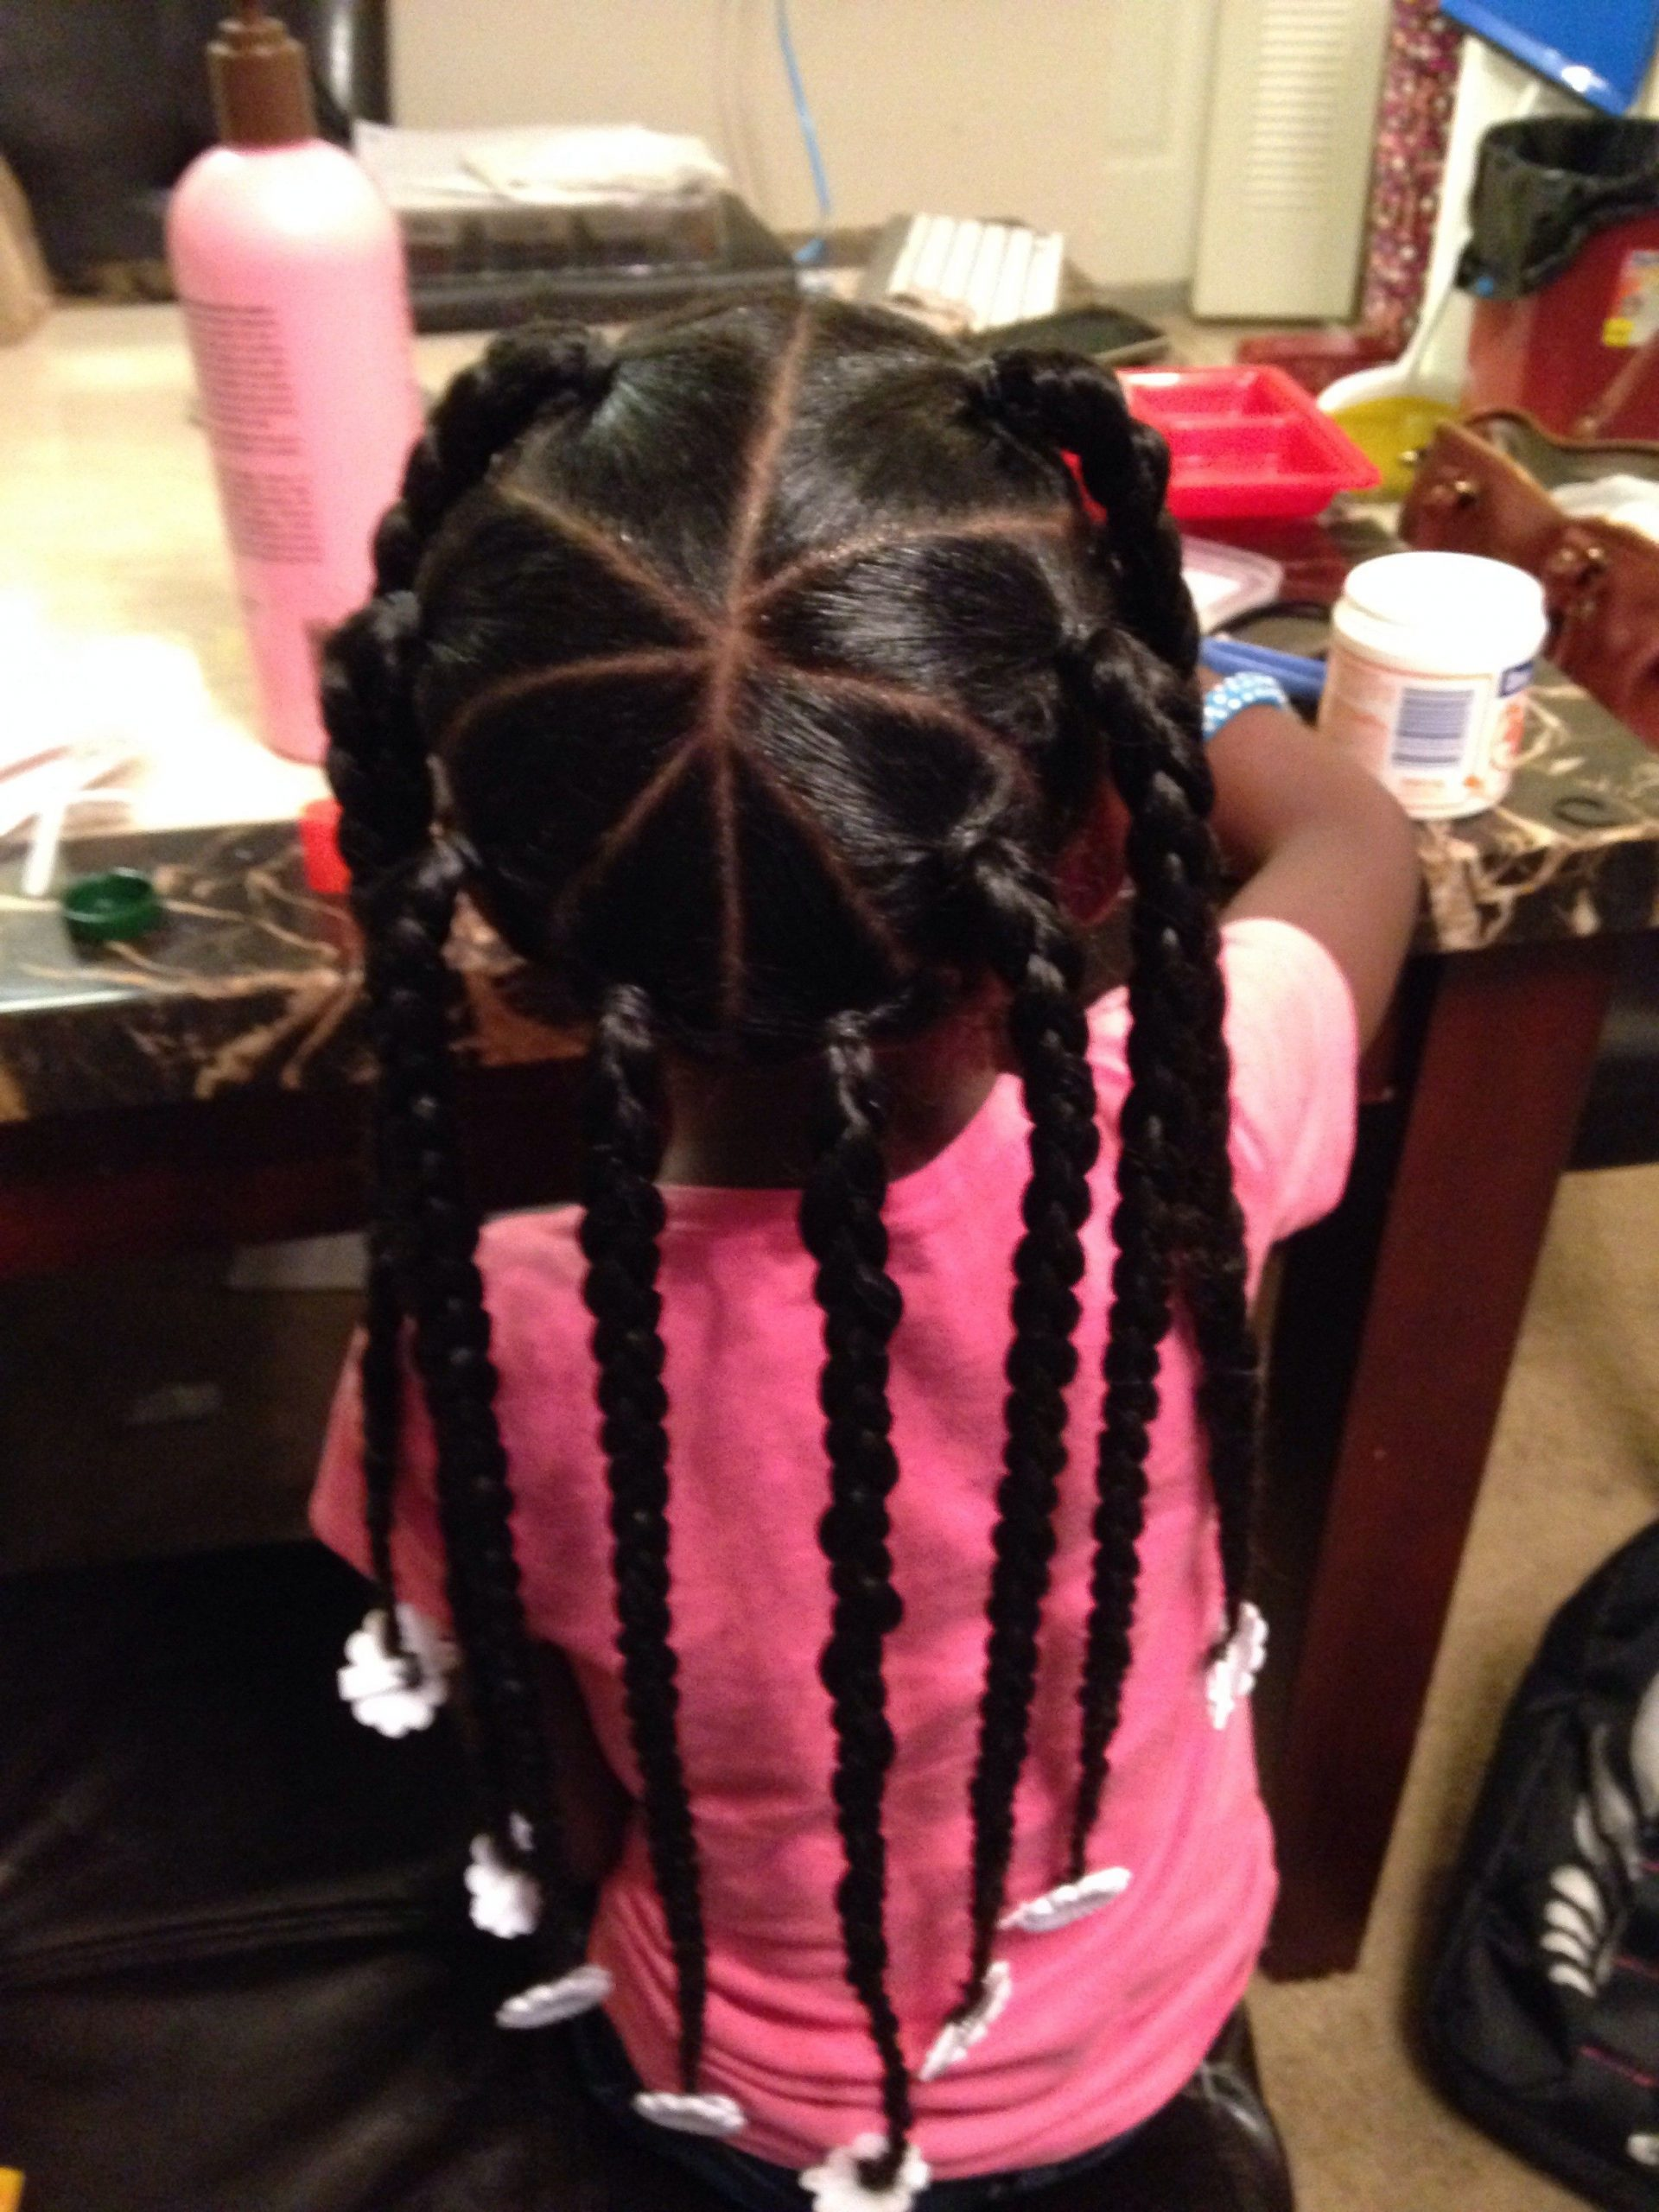 Cute hairstyles for kids hairstyleforblackwomen.net 210 scaled